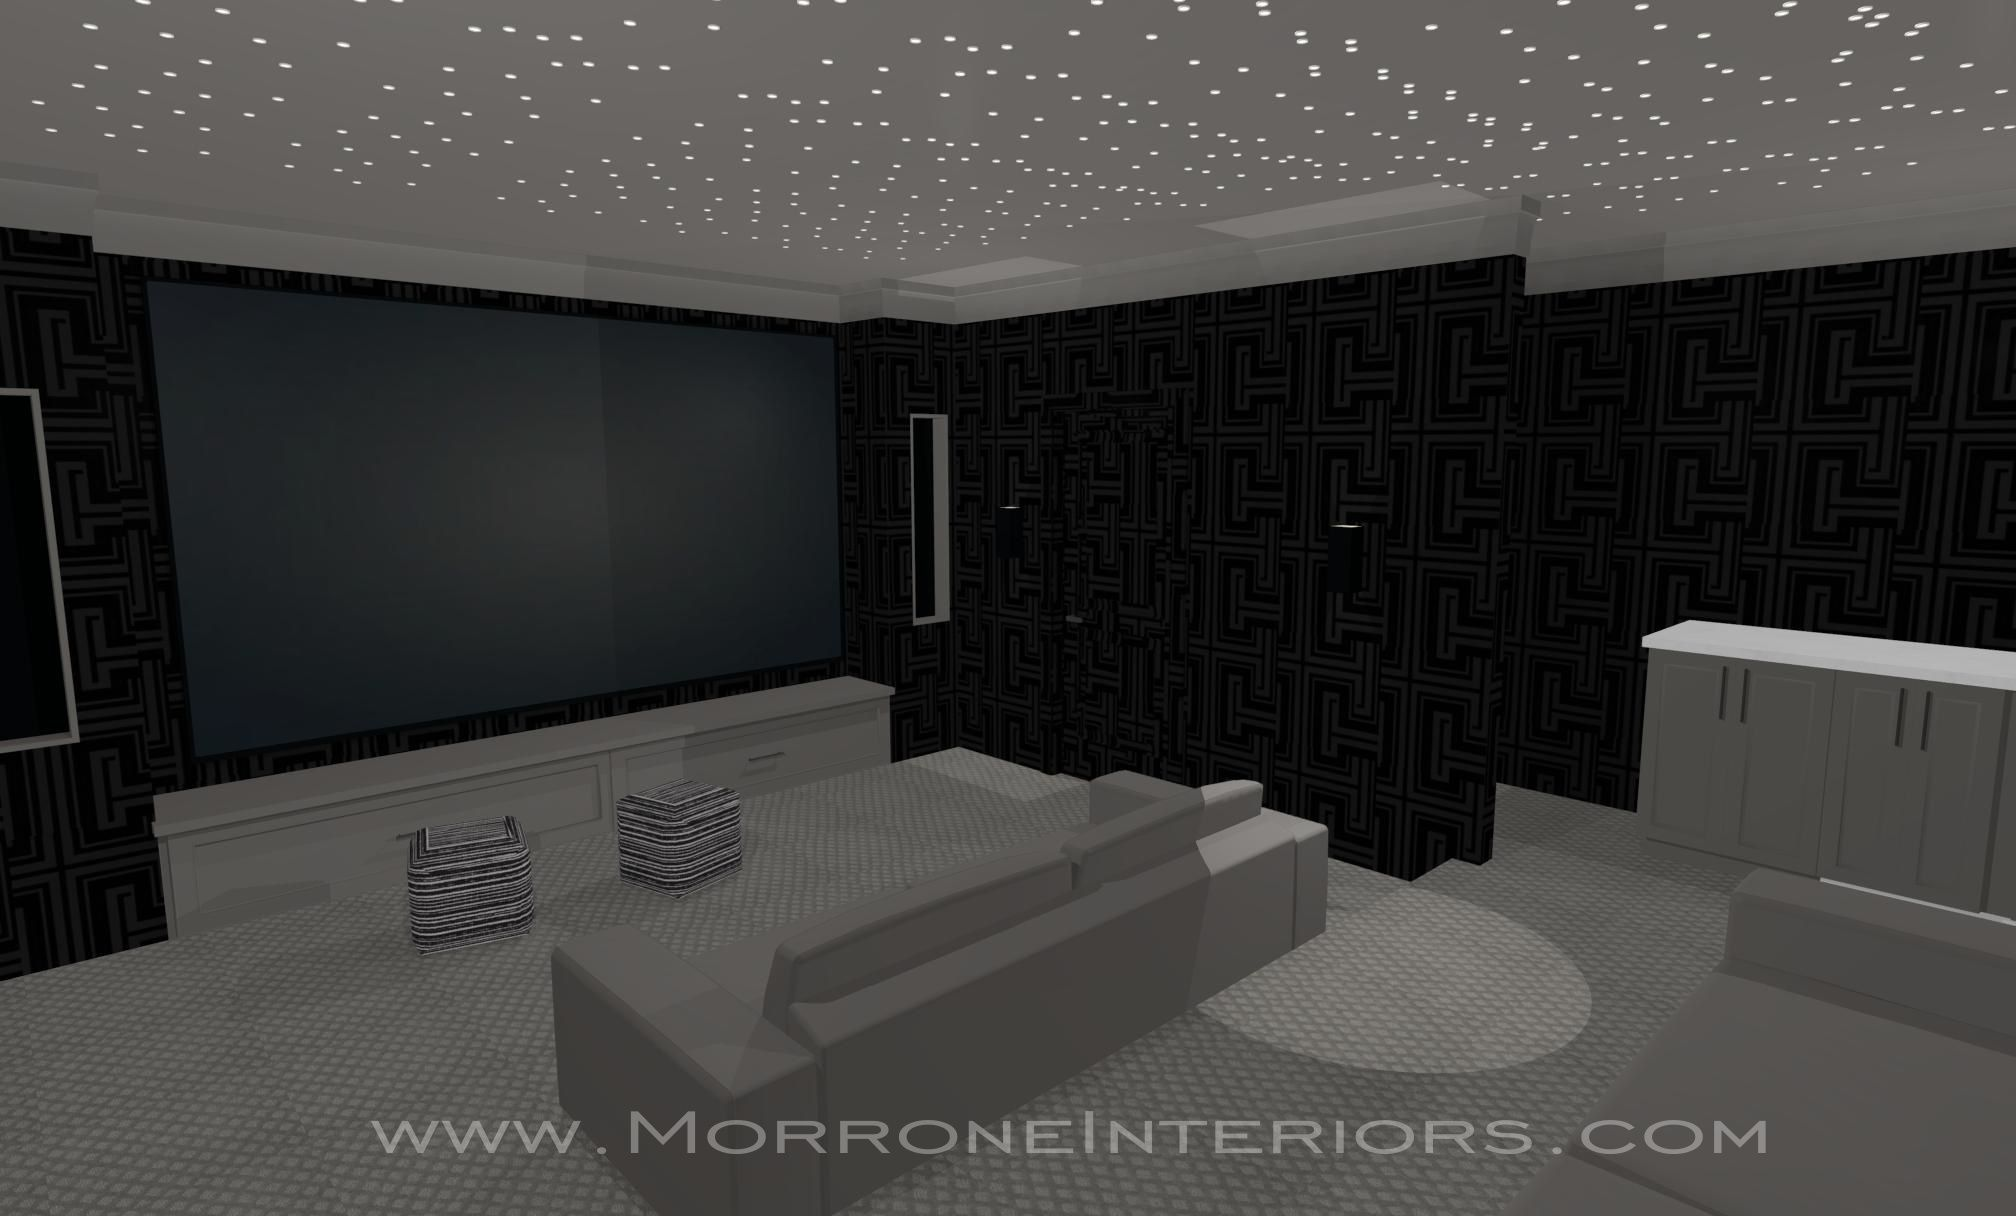 Full Home Design 3D Drawings Home Theatre Interior